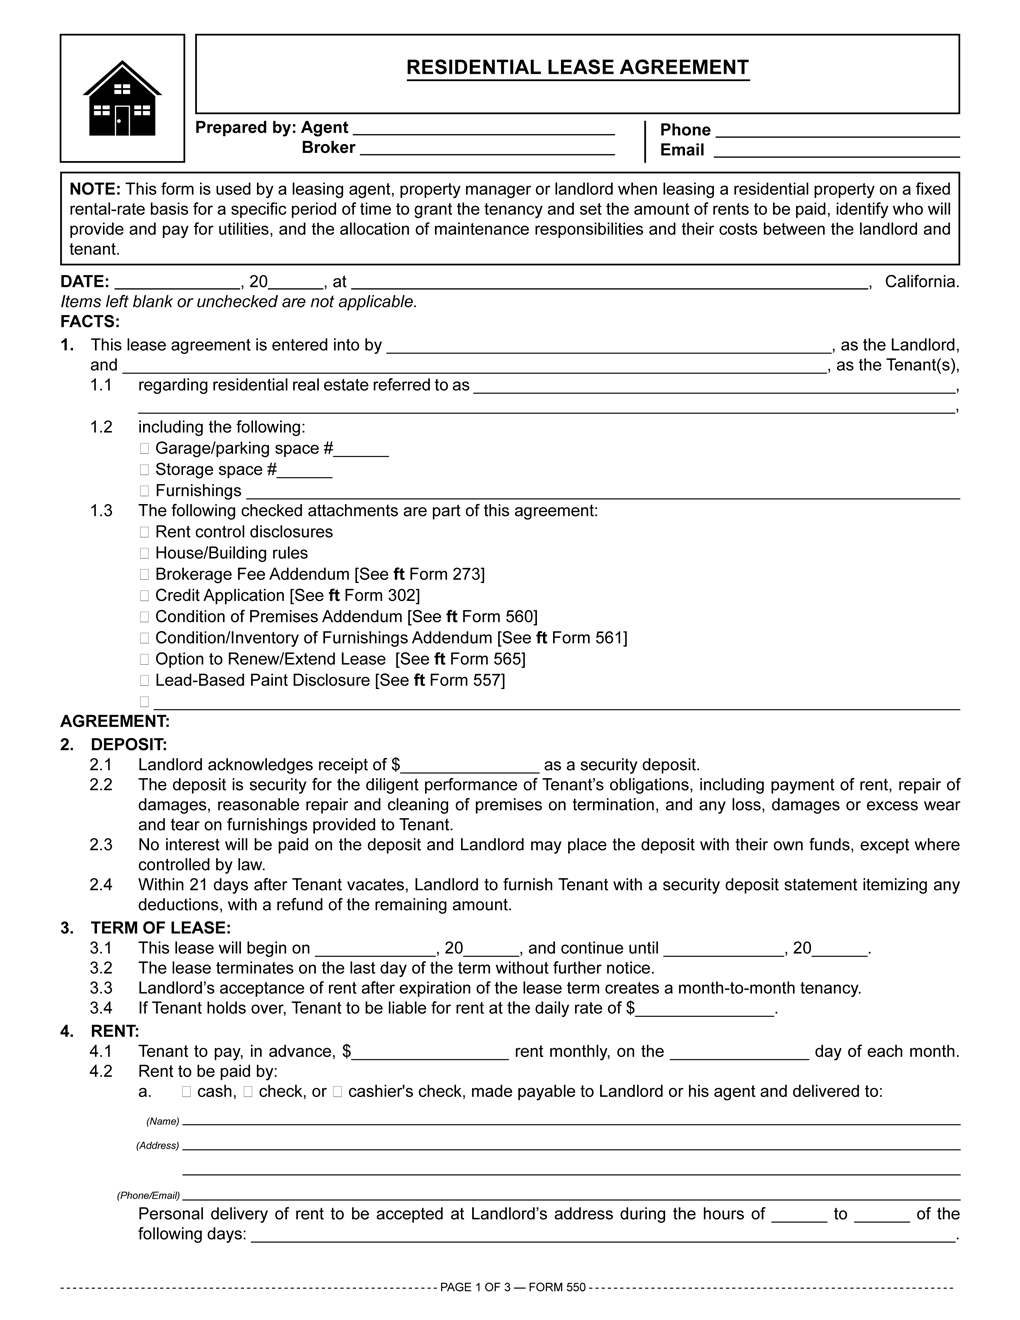 Residential Lease Agreement – RPI Form 550 | first tuesday Journal